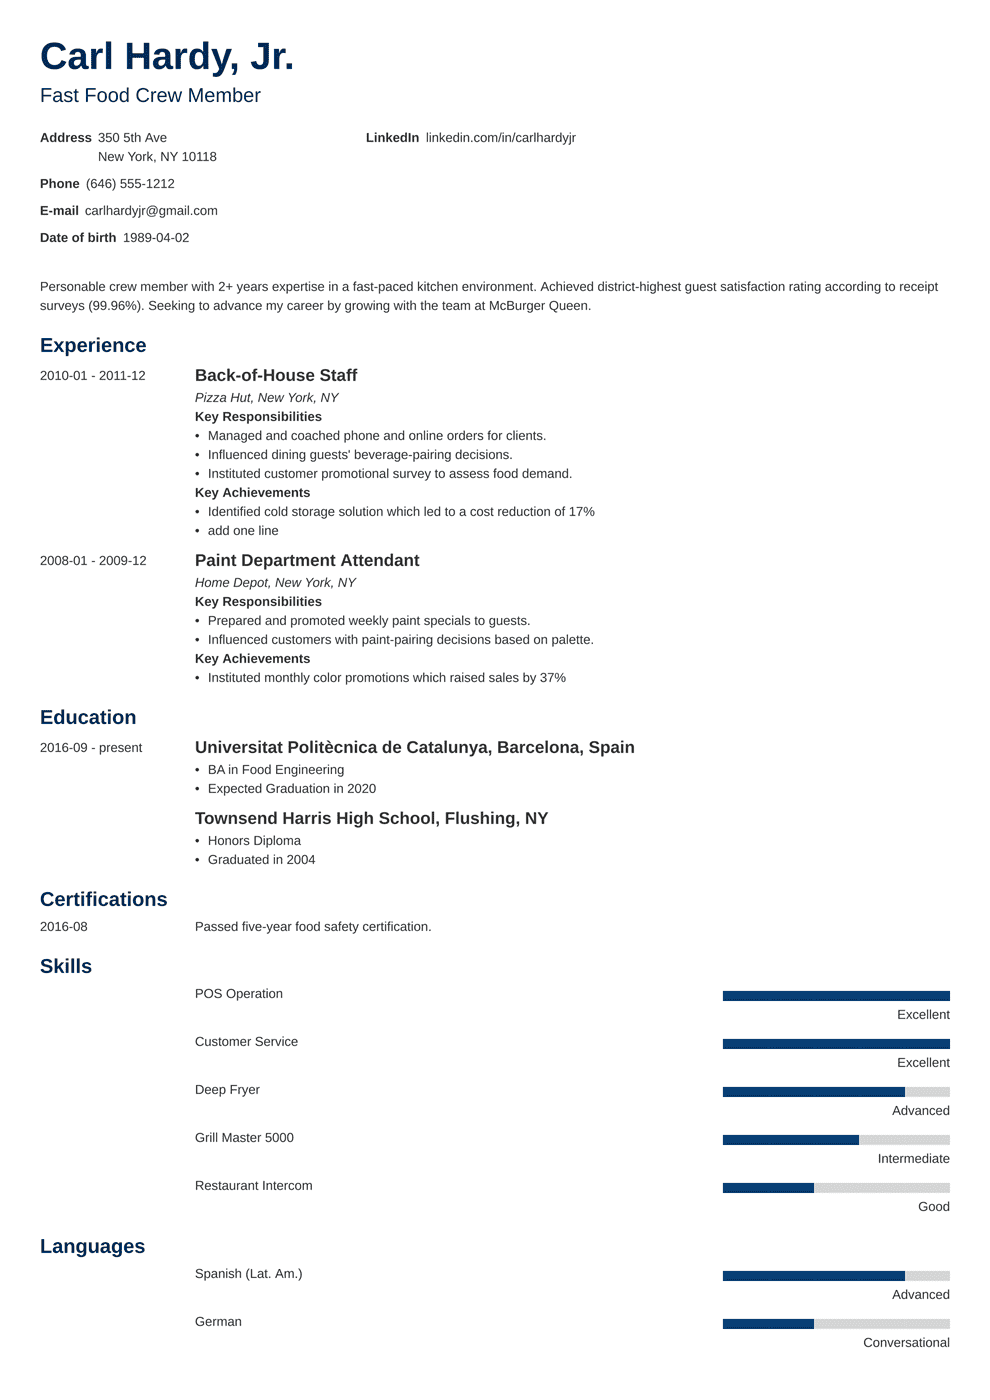 Fast Food Resume Examples (Skills, Job Description, Tips)